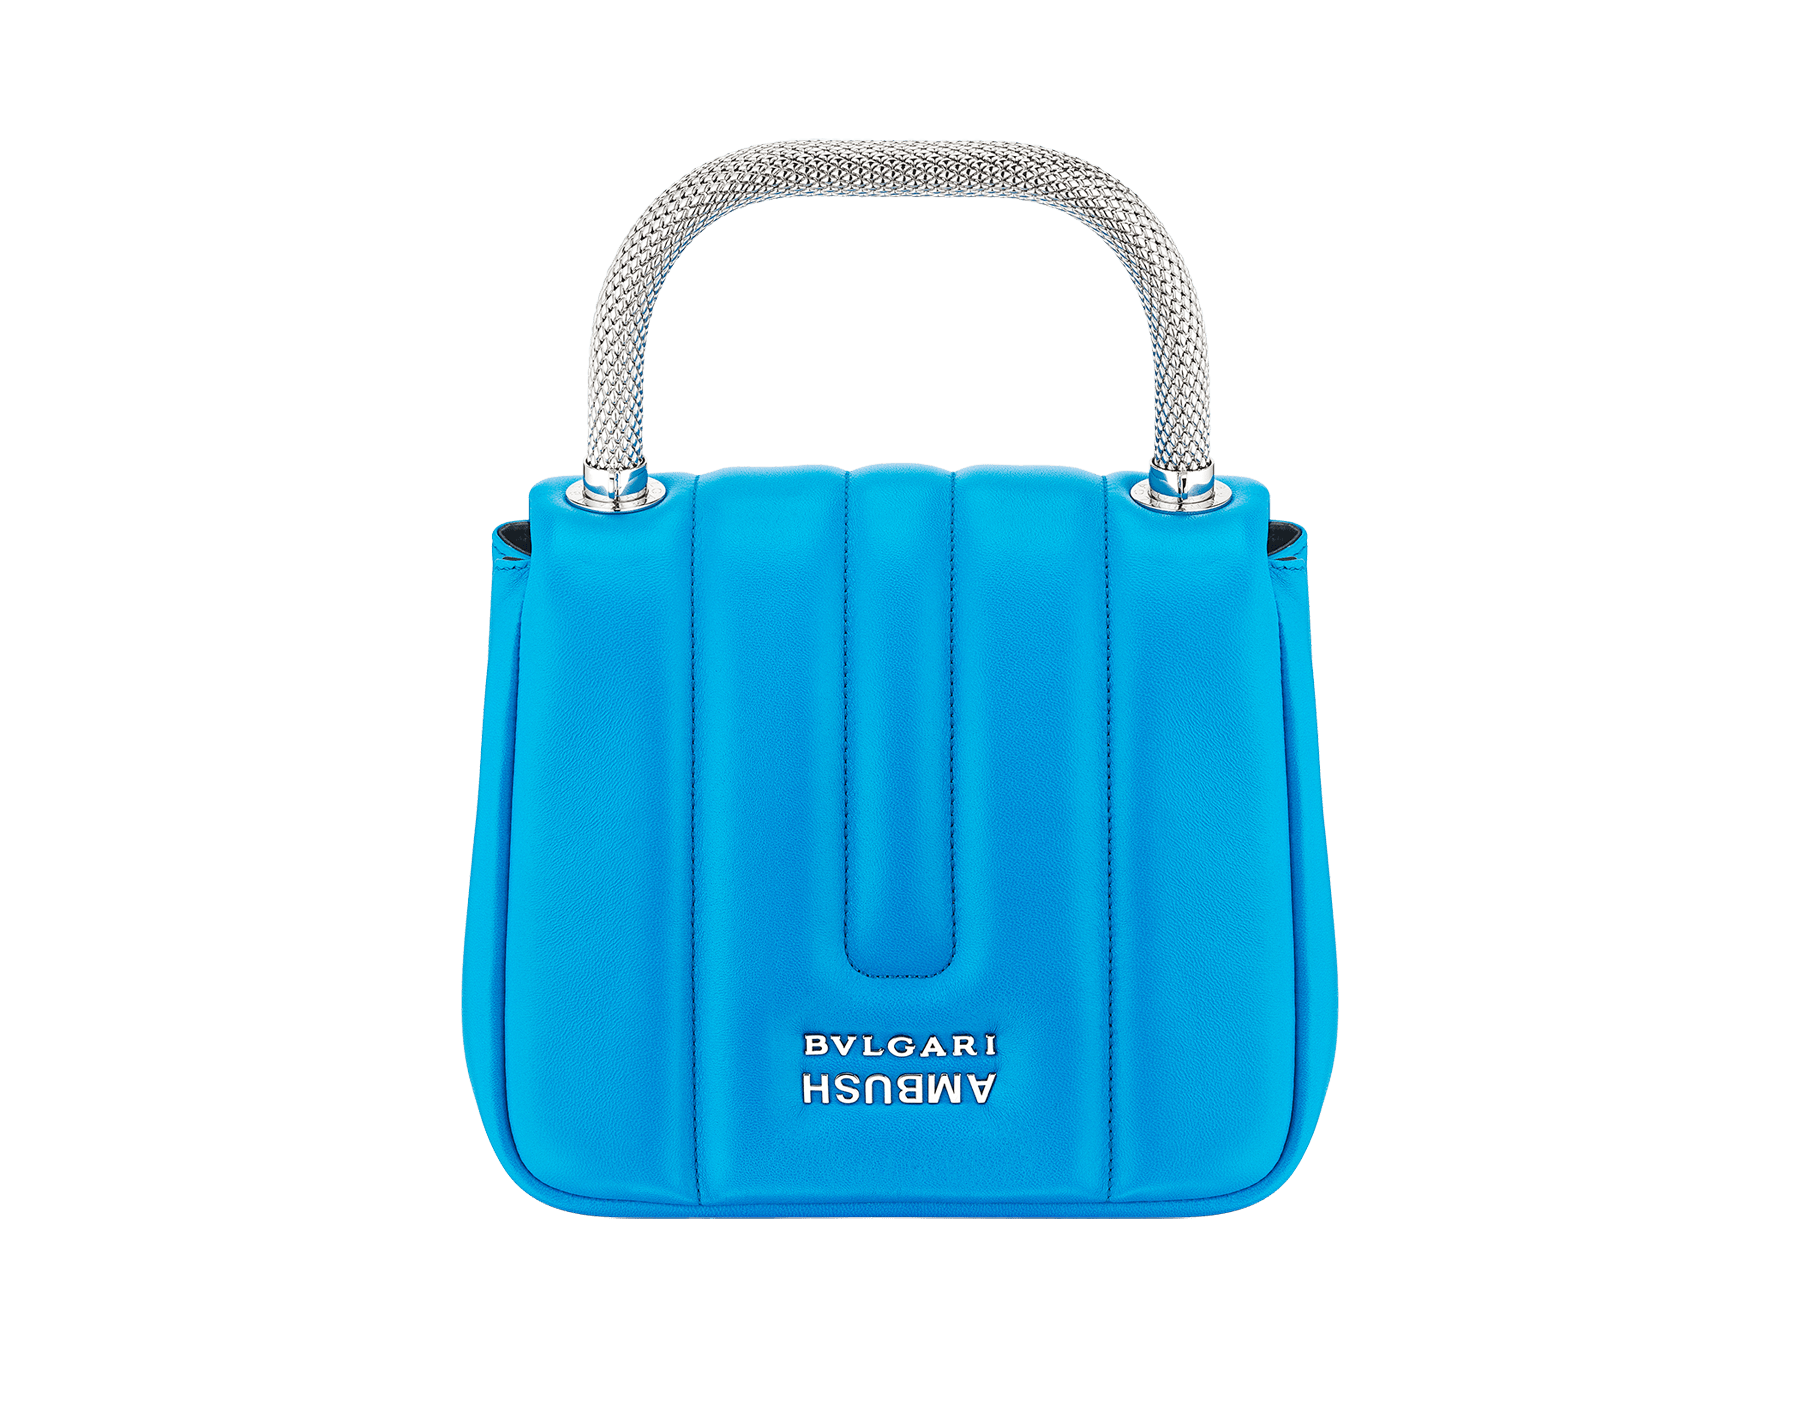 """Ambush x Bvlgari"" top handle bag in bright blue nappa leather. New Serpenti head closure in palladium plated brass dressed with bright blue nappa leather, finished with seductive black onyx eyes. Limited edition. 290344 image 3"